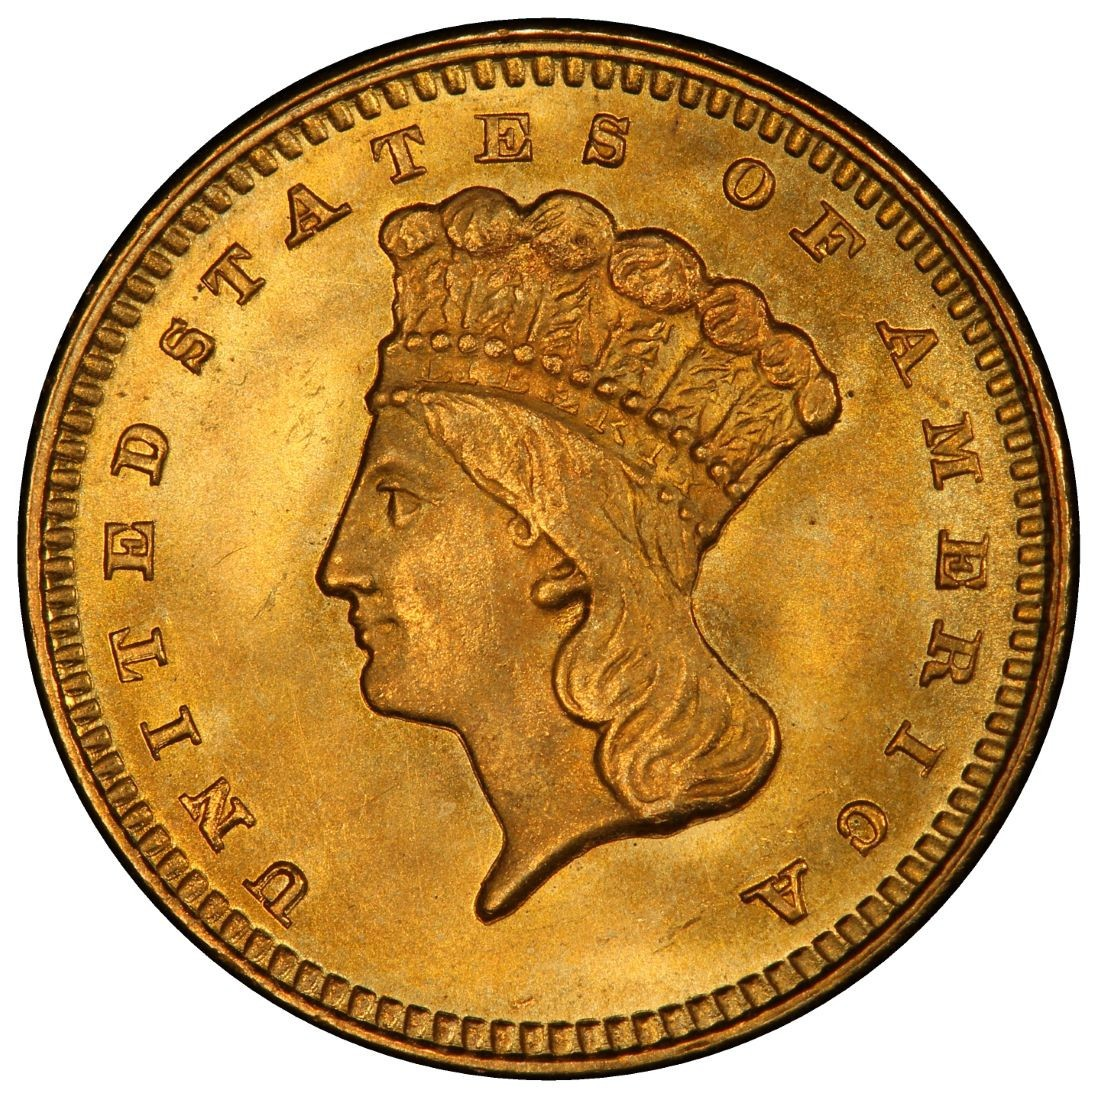 What Is A Gold Dollar Coin Worth: 1873 Large Head Indian Princess Gold Dollar Values And